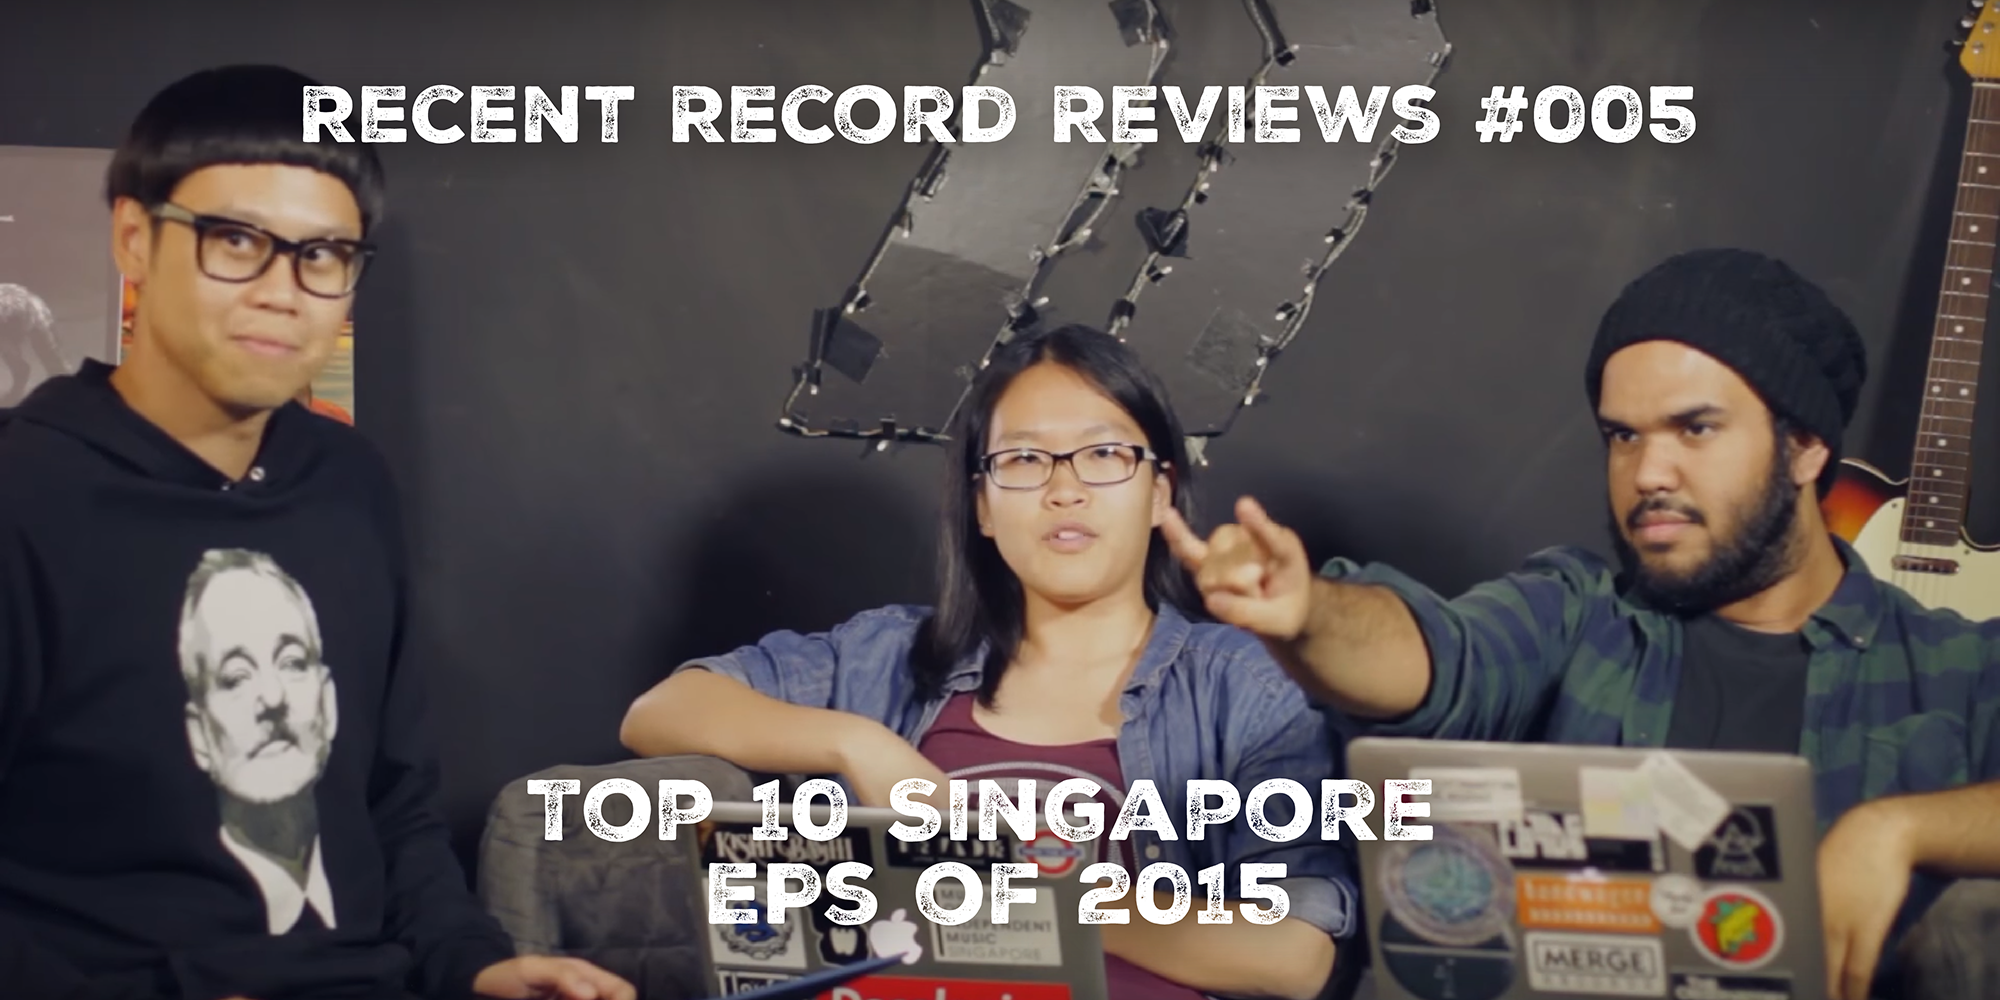 WATCH: Bandwagon Recent Record Reviews #005 - Top 10 Singapore EPs of 2015